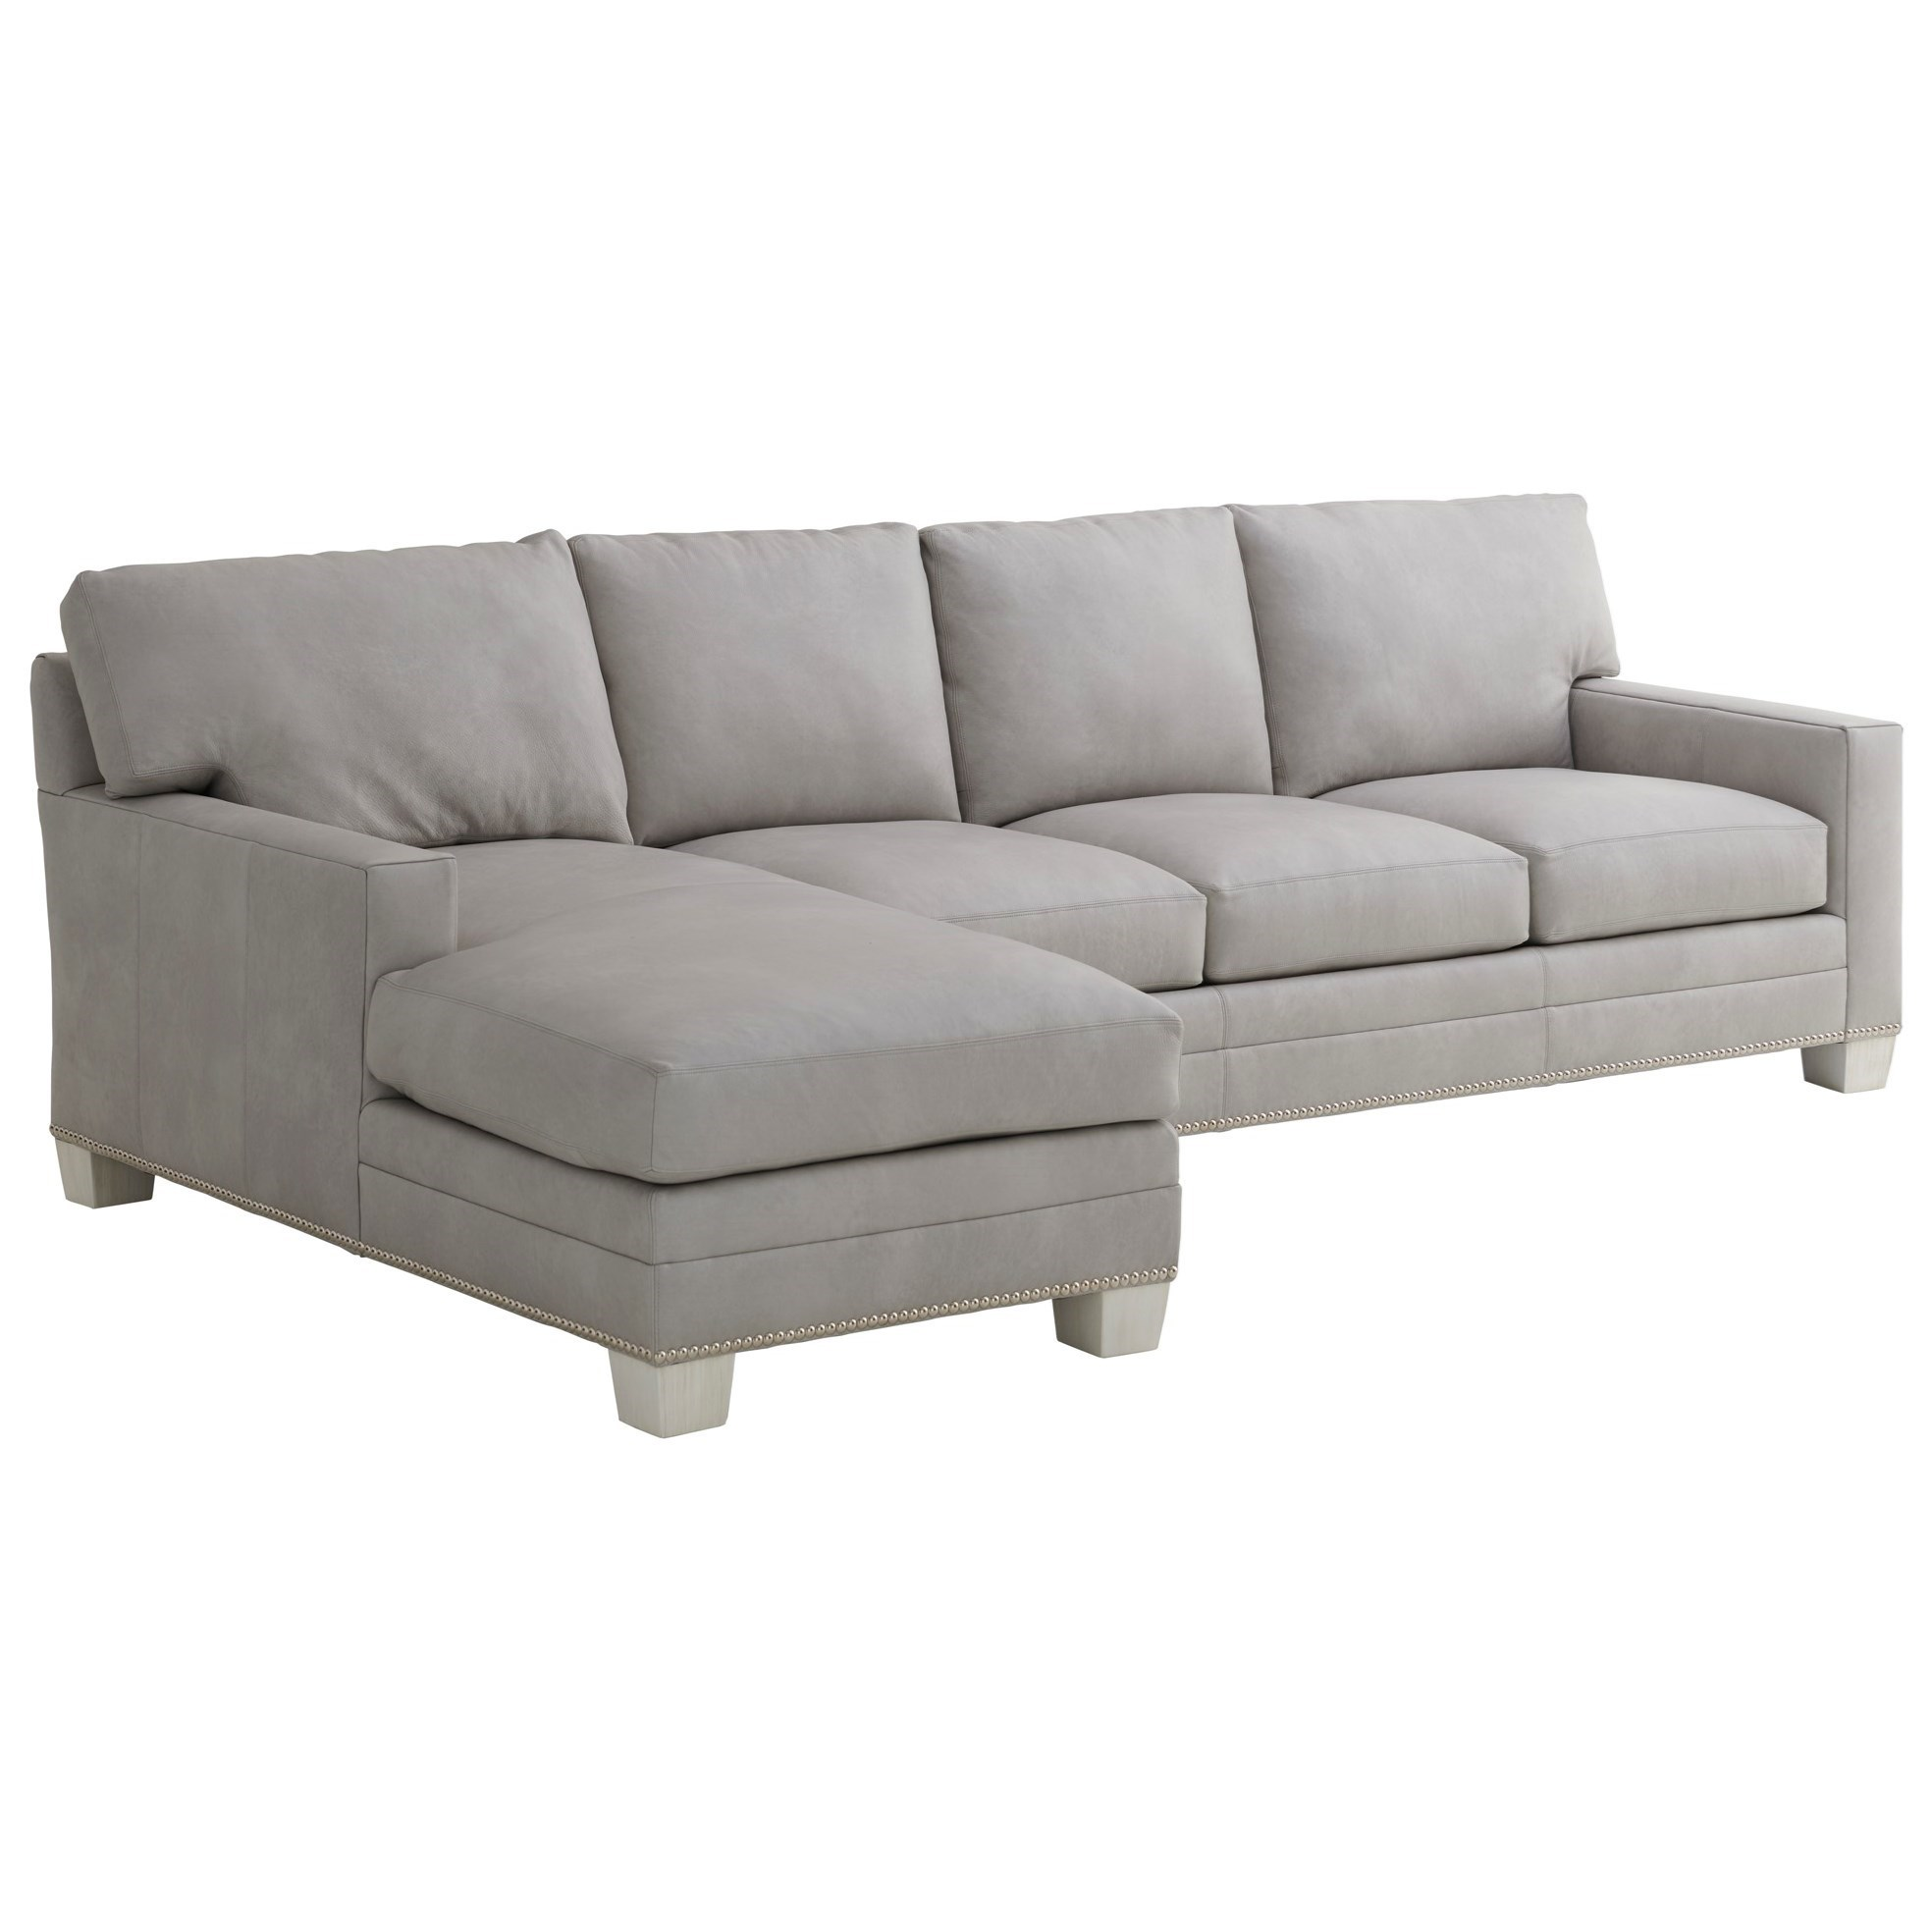 Braxton Customizable 4-Seat Chaise Sofa